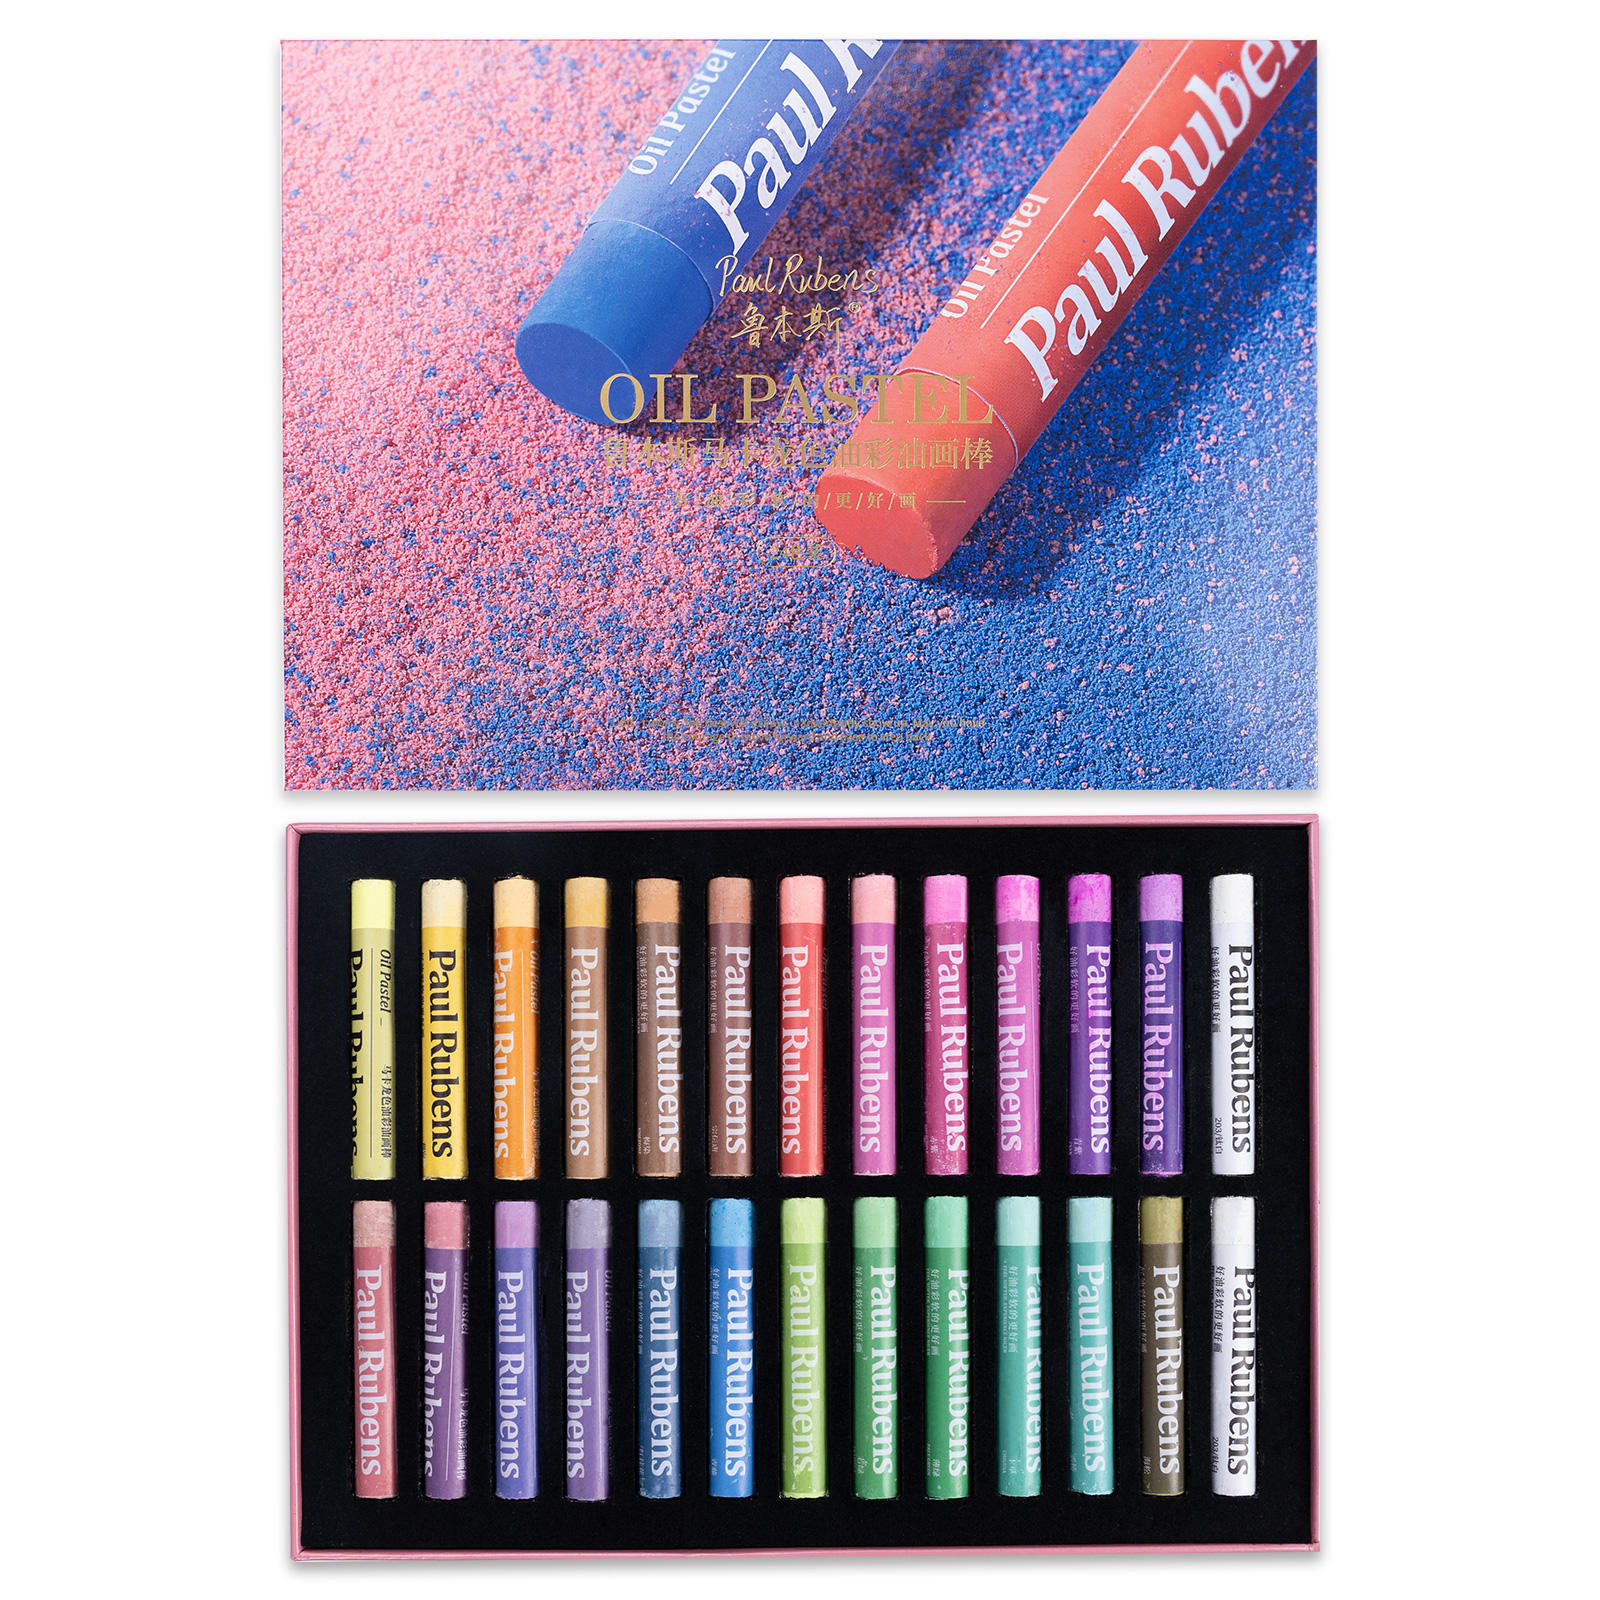 Paul Rubens 24 Macaron Colors Oil Pastel Set Suitable for Painting Summer Feeling/Vivid Picture, Making Pictures Brightly&Active